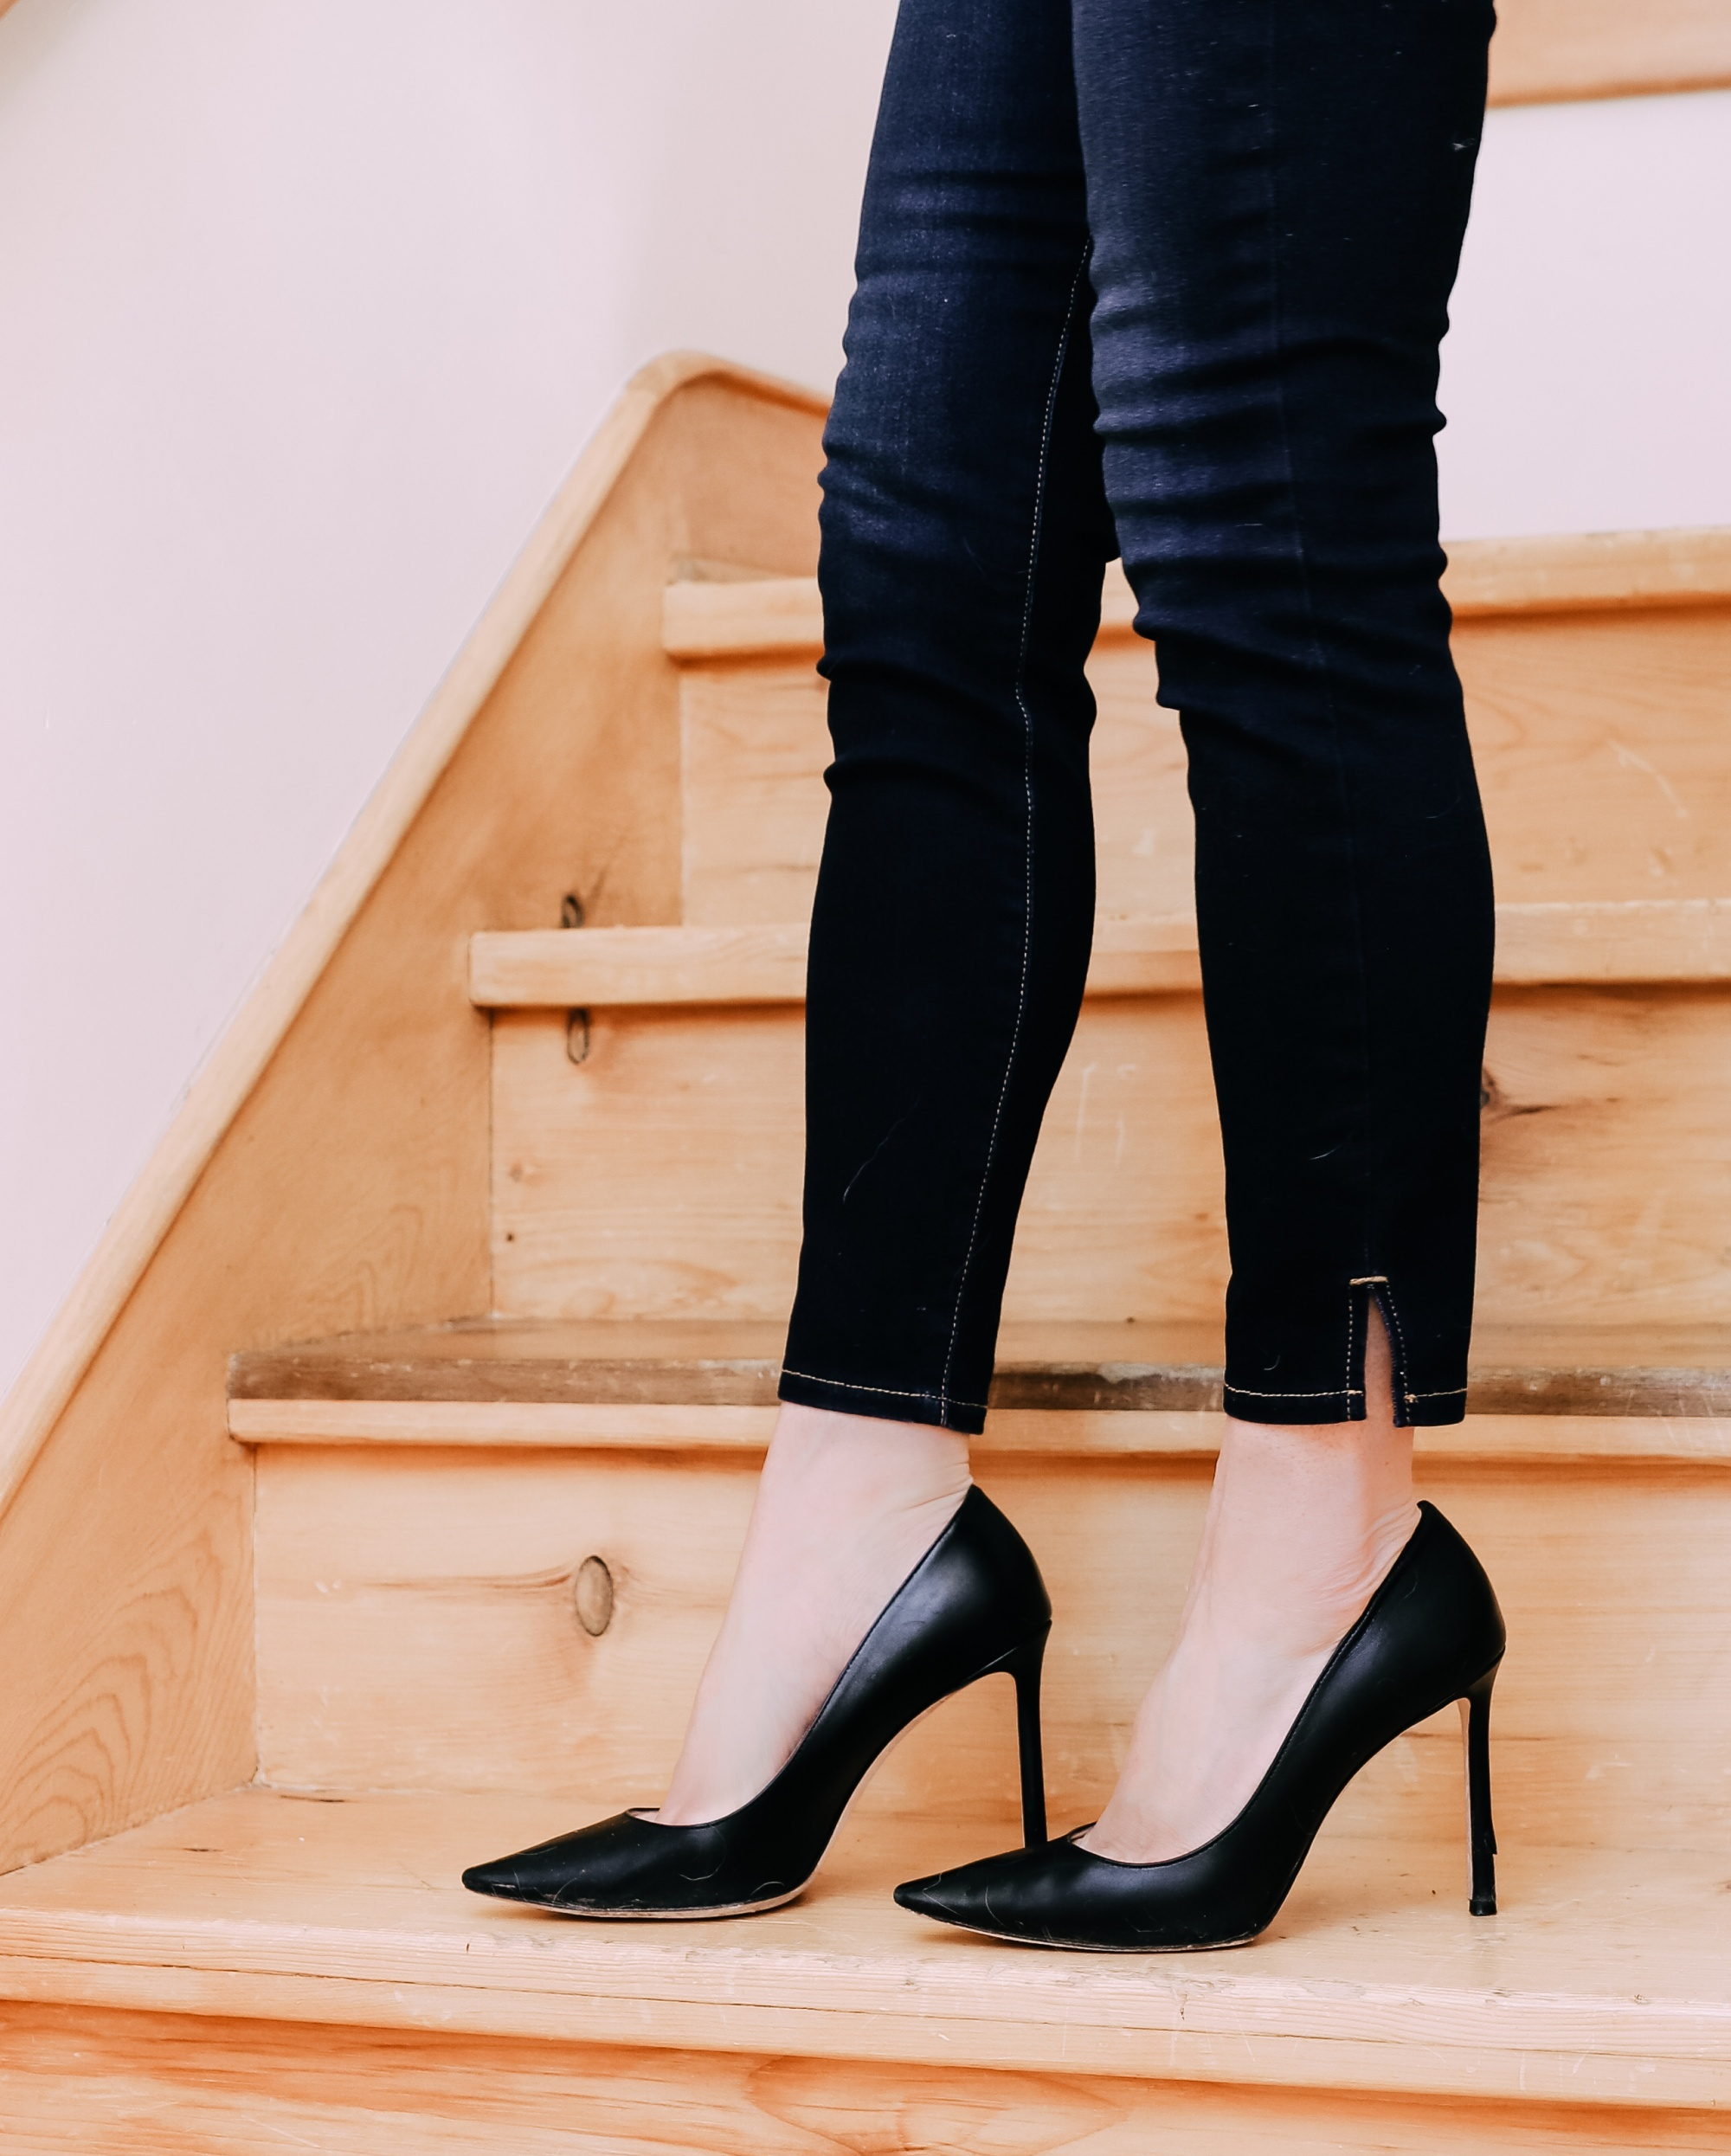 what shoes to wear with jeans featuring Jimmy Choo Romy pumps in black leather paired with dark wash skinny jeans and a black lace corset top by Jonathan Simkhai on fashion over 40 blogger Erin Busbee